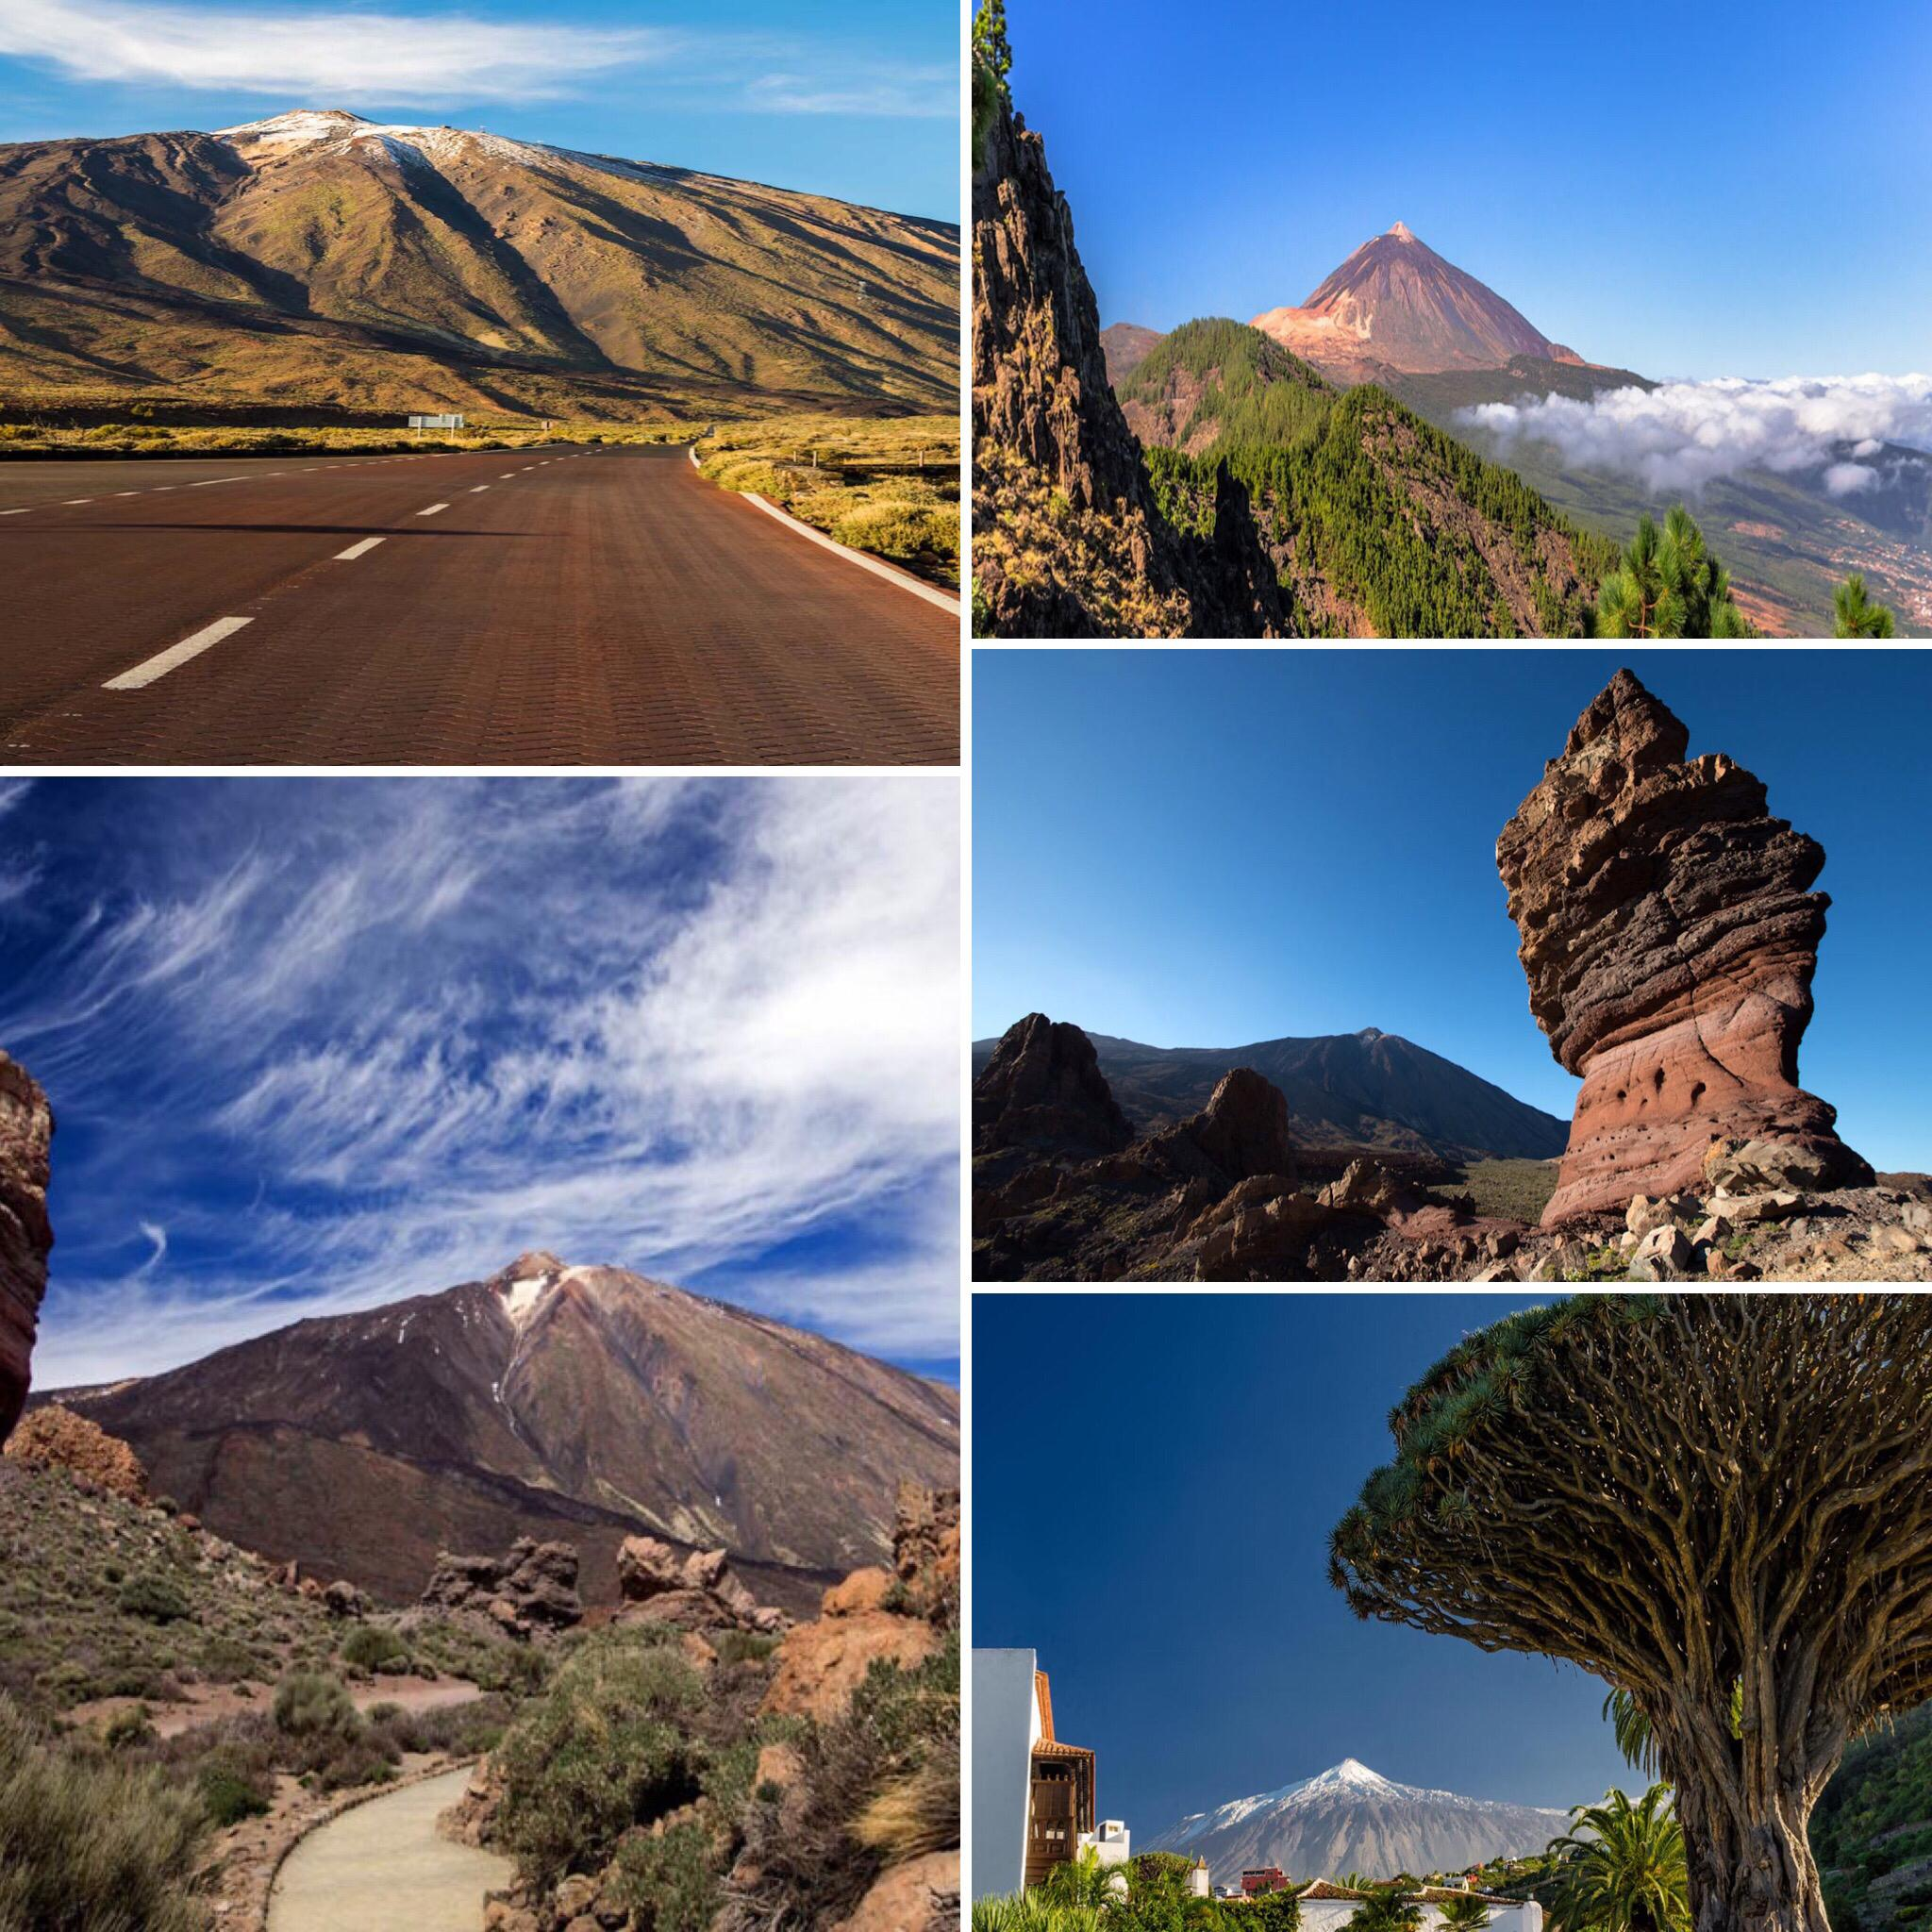 Teide Mountain National Park.